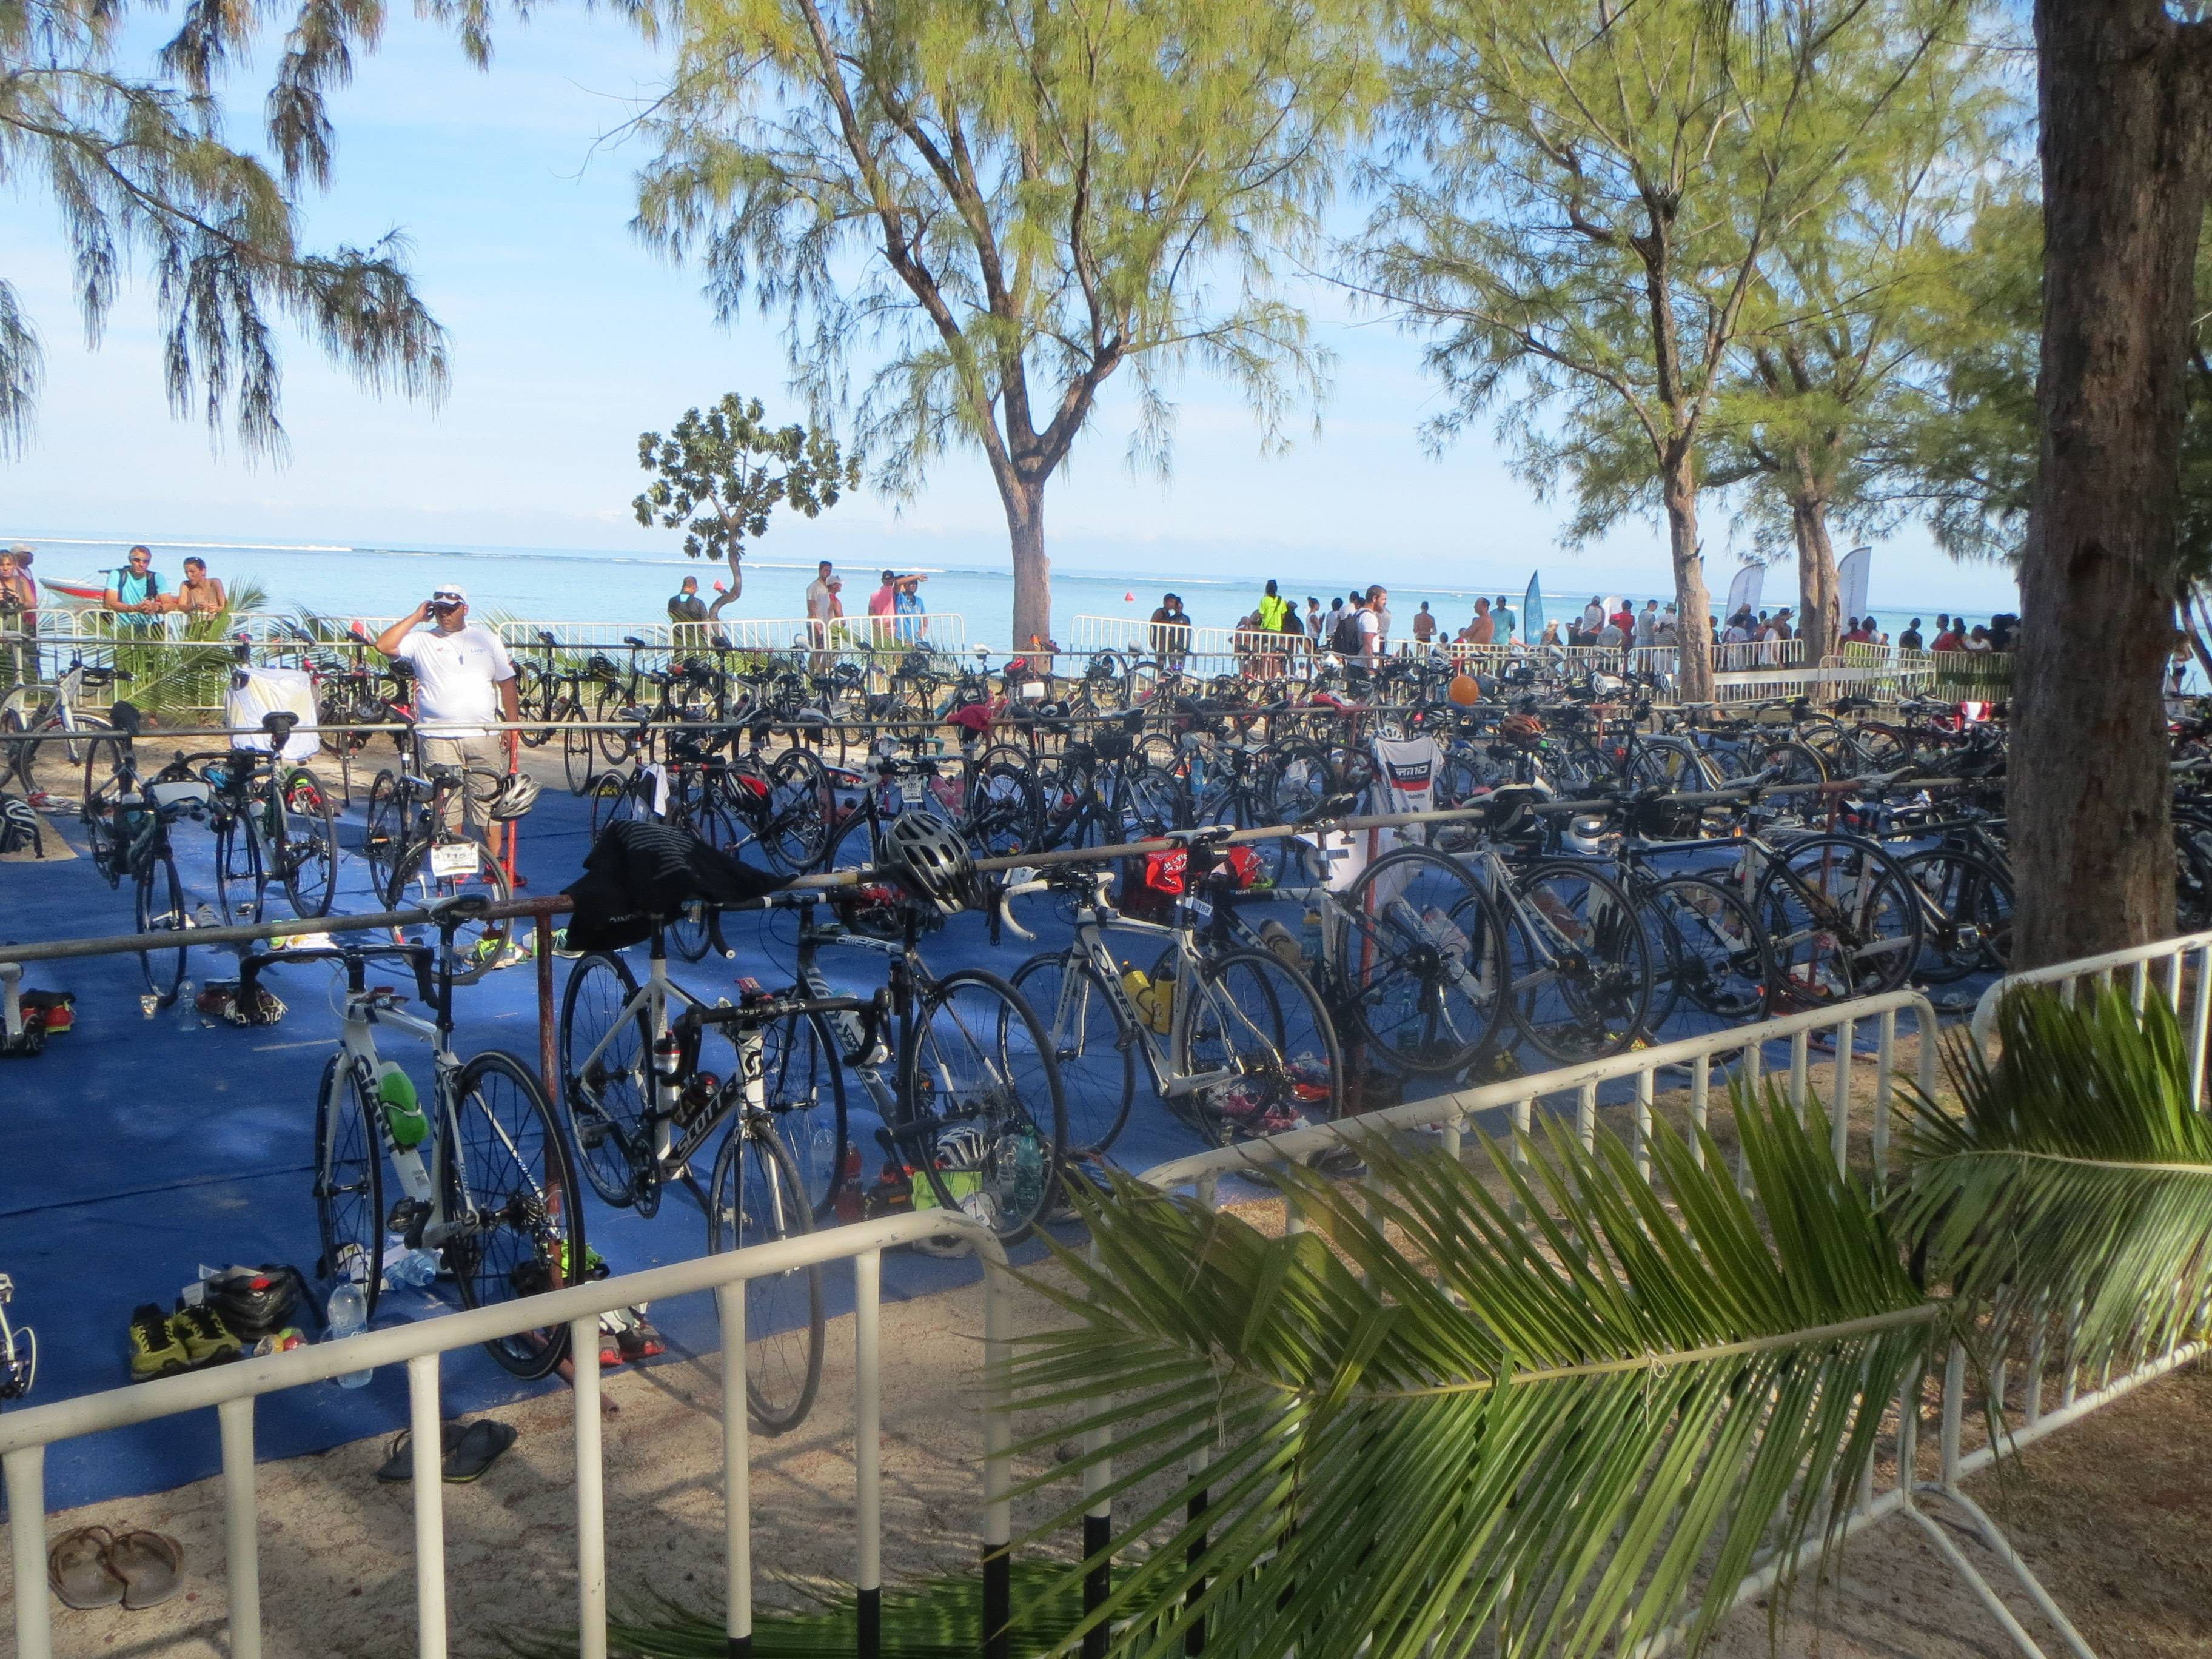 Photo 2: TRIATHLON DE L'ÎLE MAURICE....